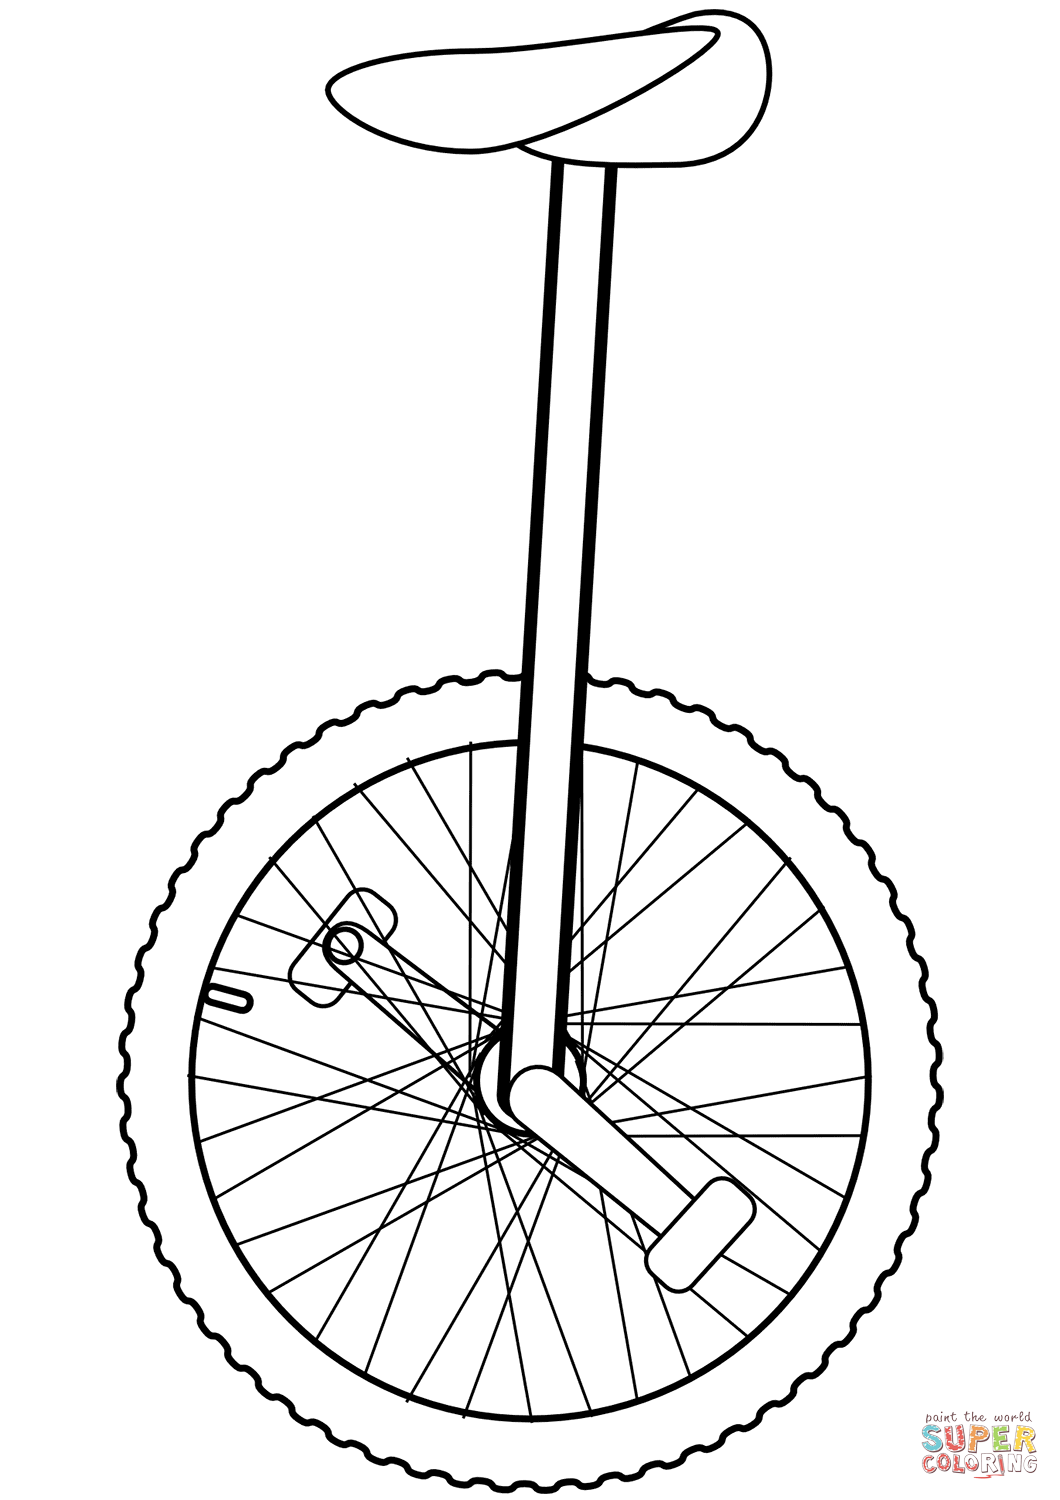 Unicycle Coloring Page